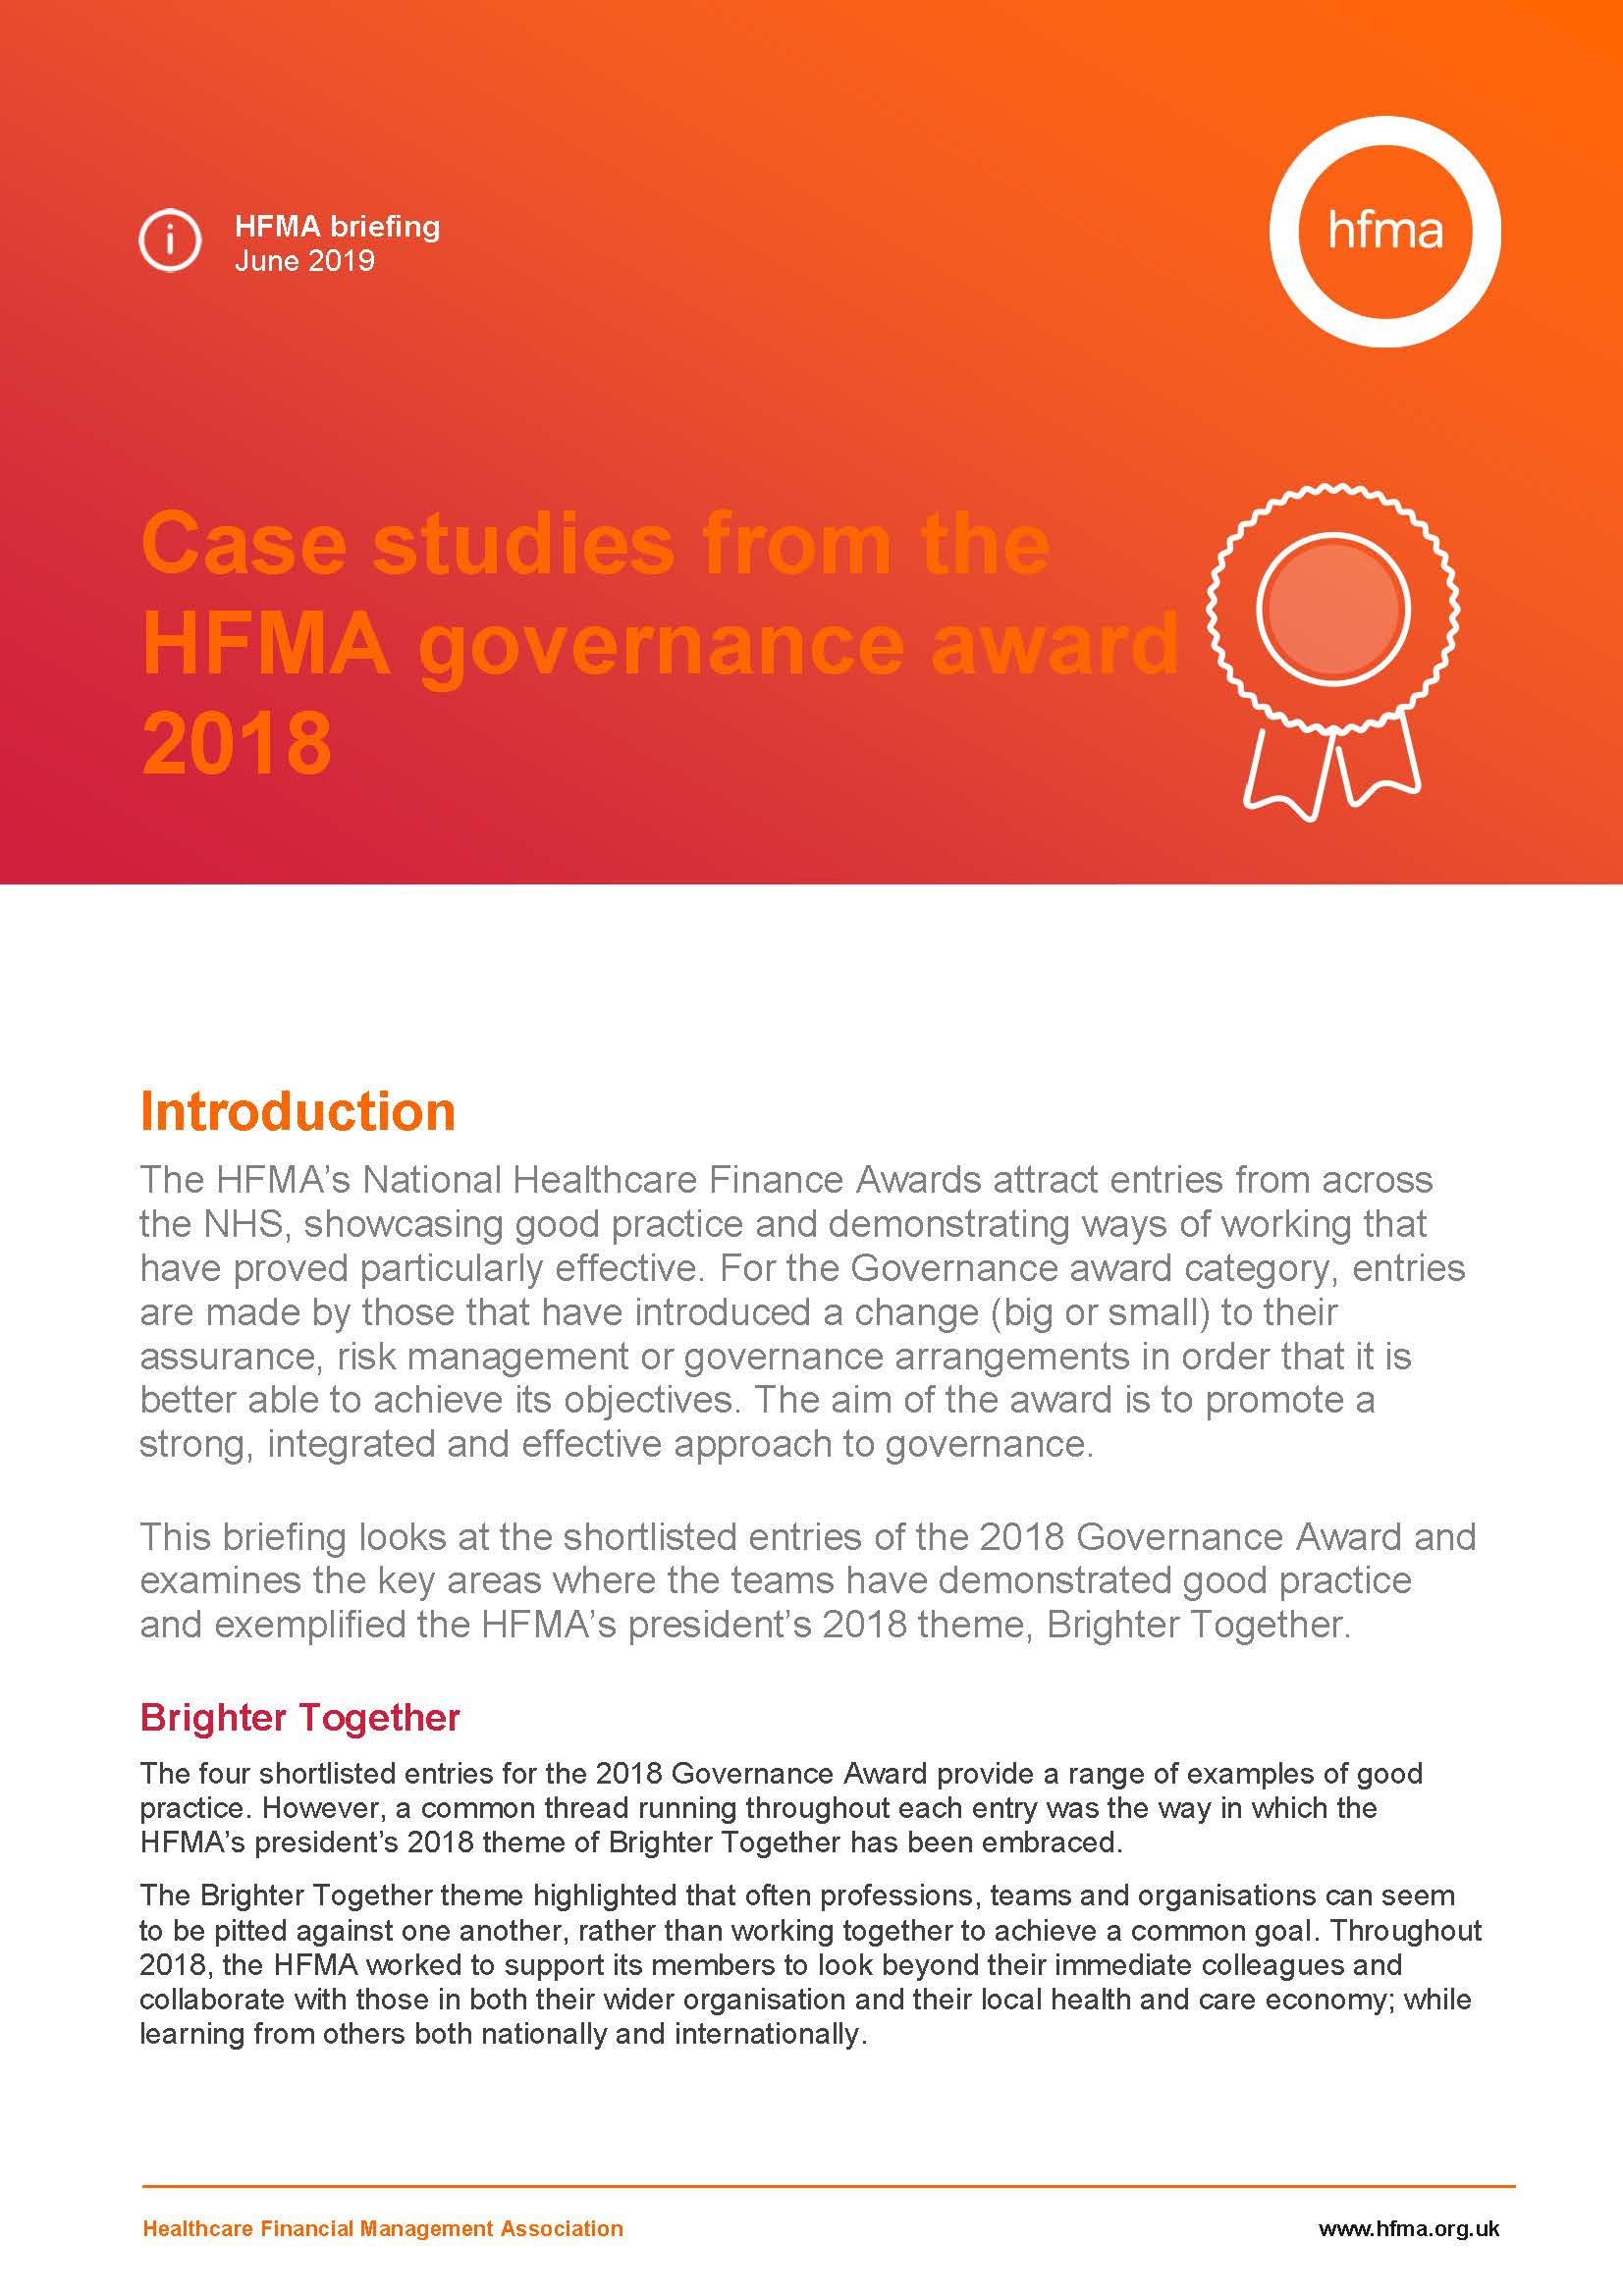 Case studies from the HFMA governance award 2018